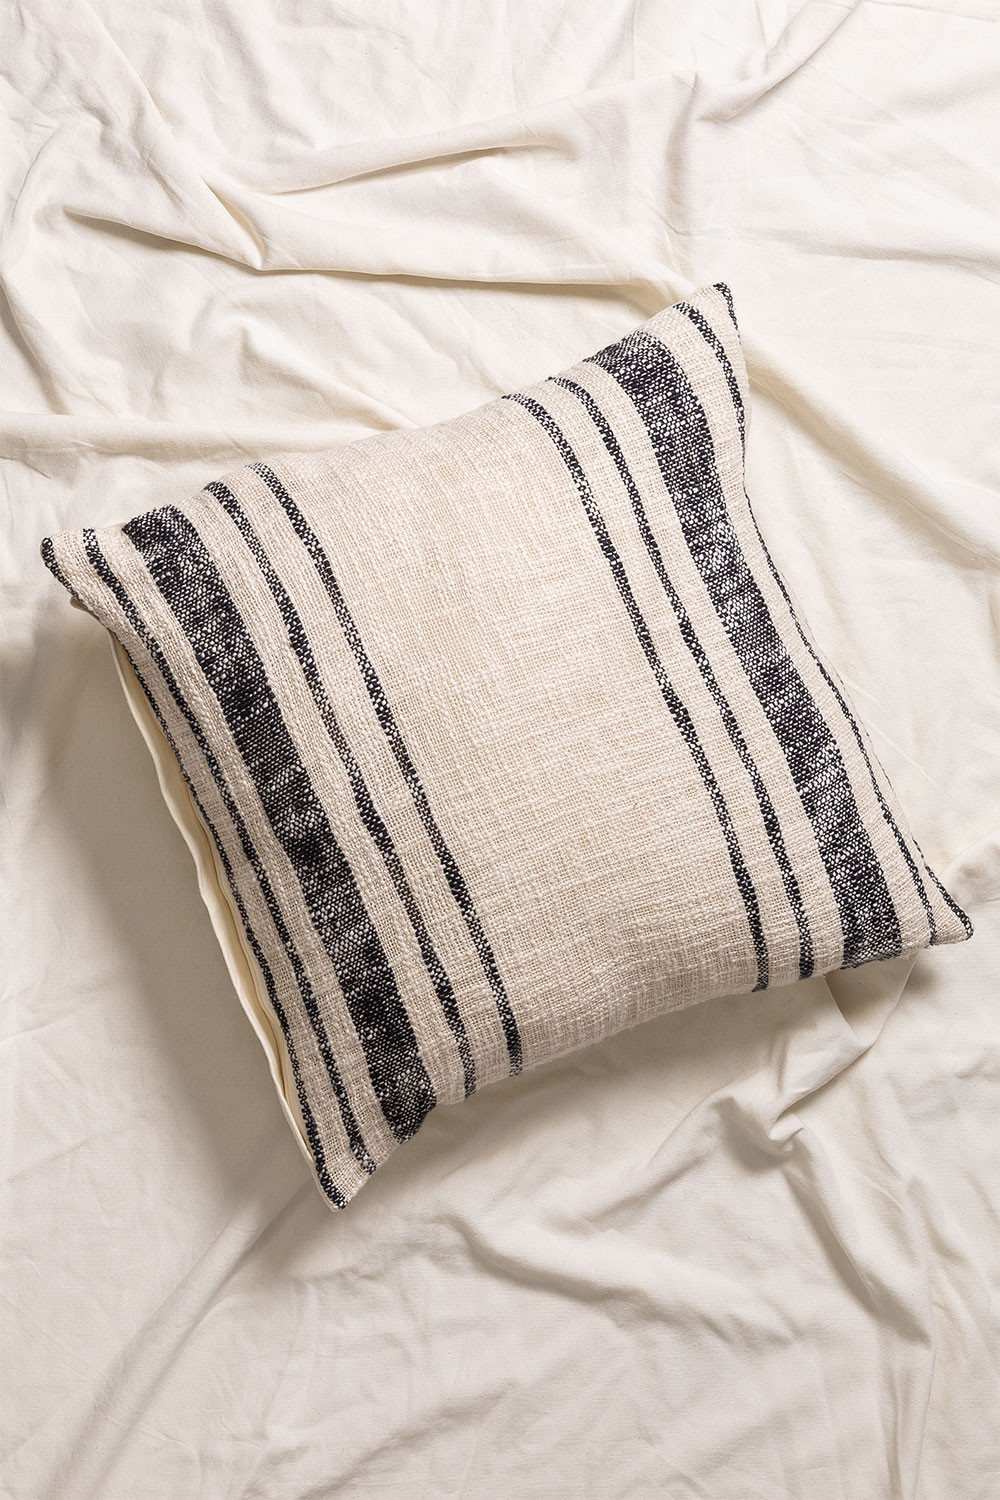 Verka Cushion COver in Cotton, gallery image 1